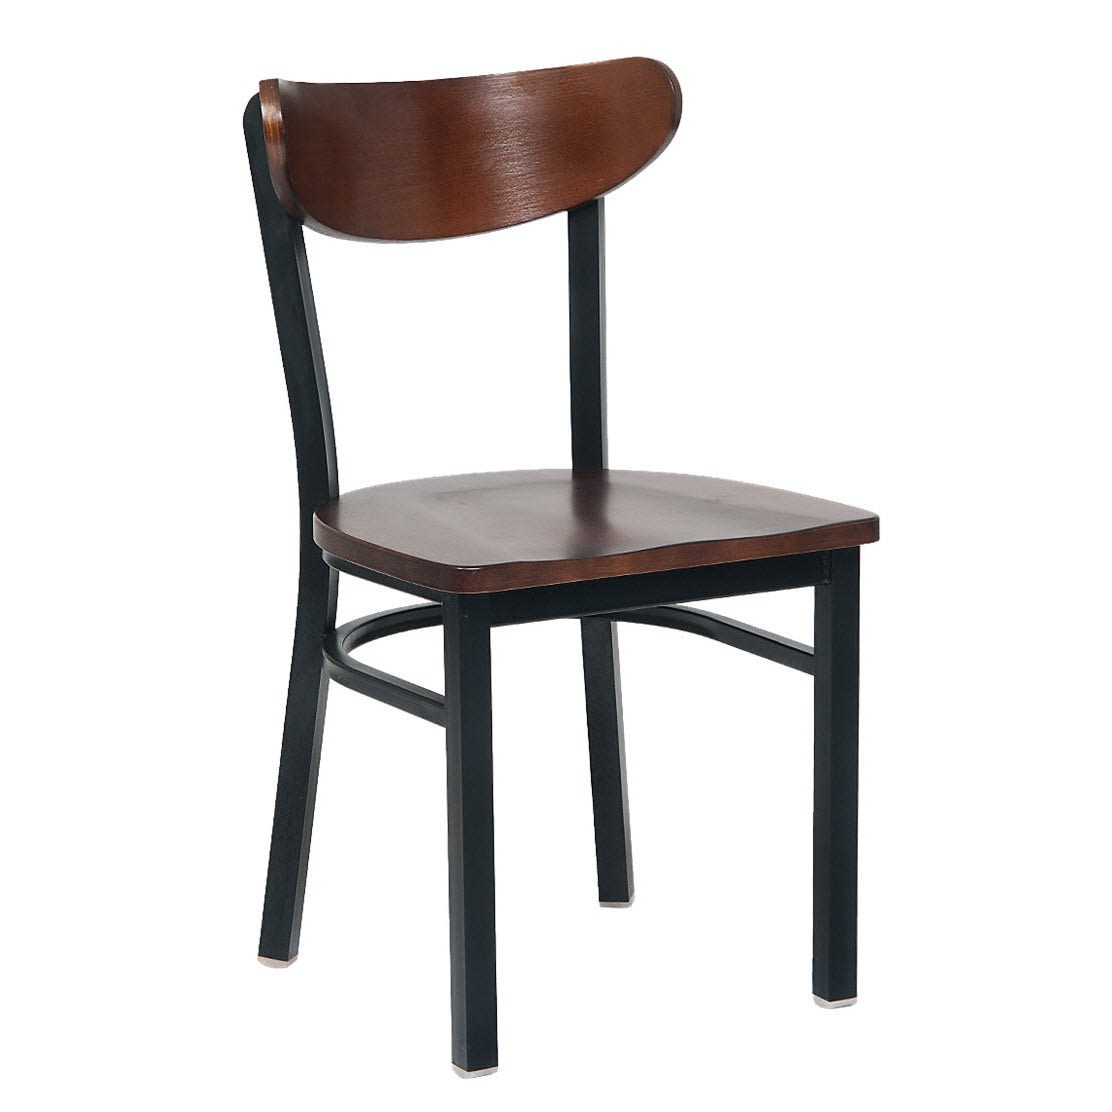 Modern Curved Back Metal Chair